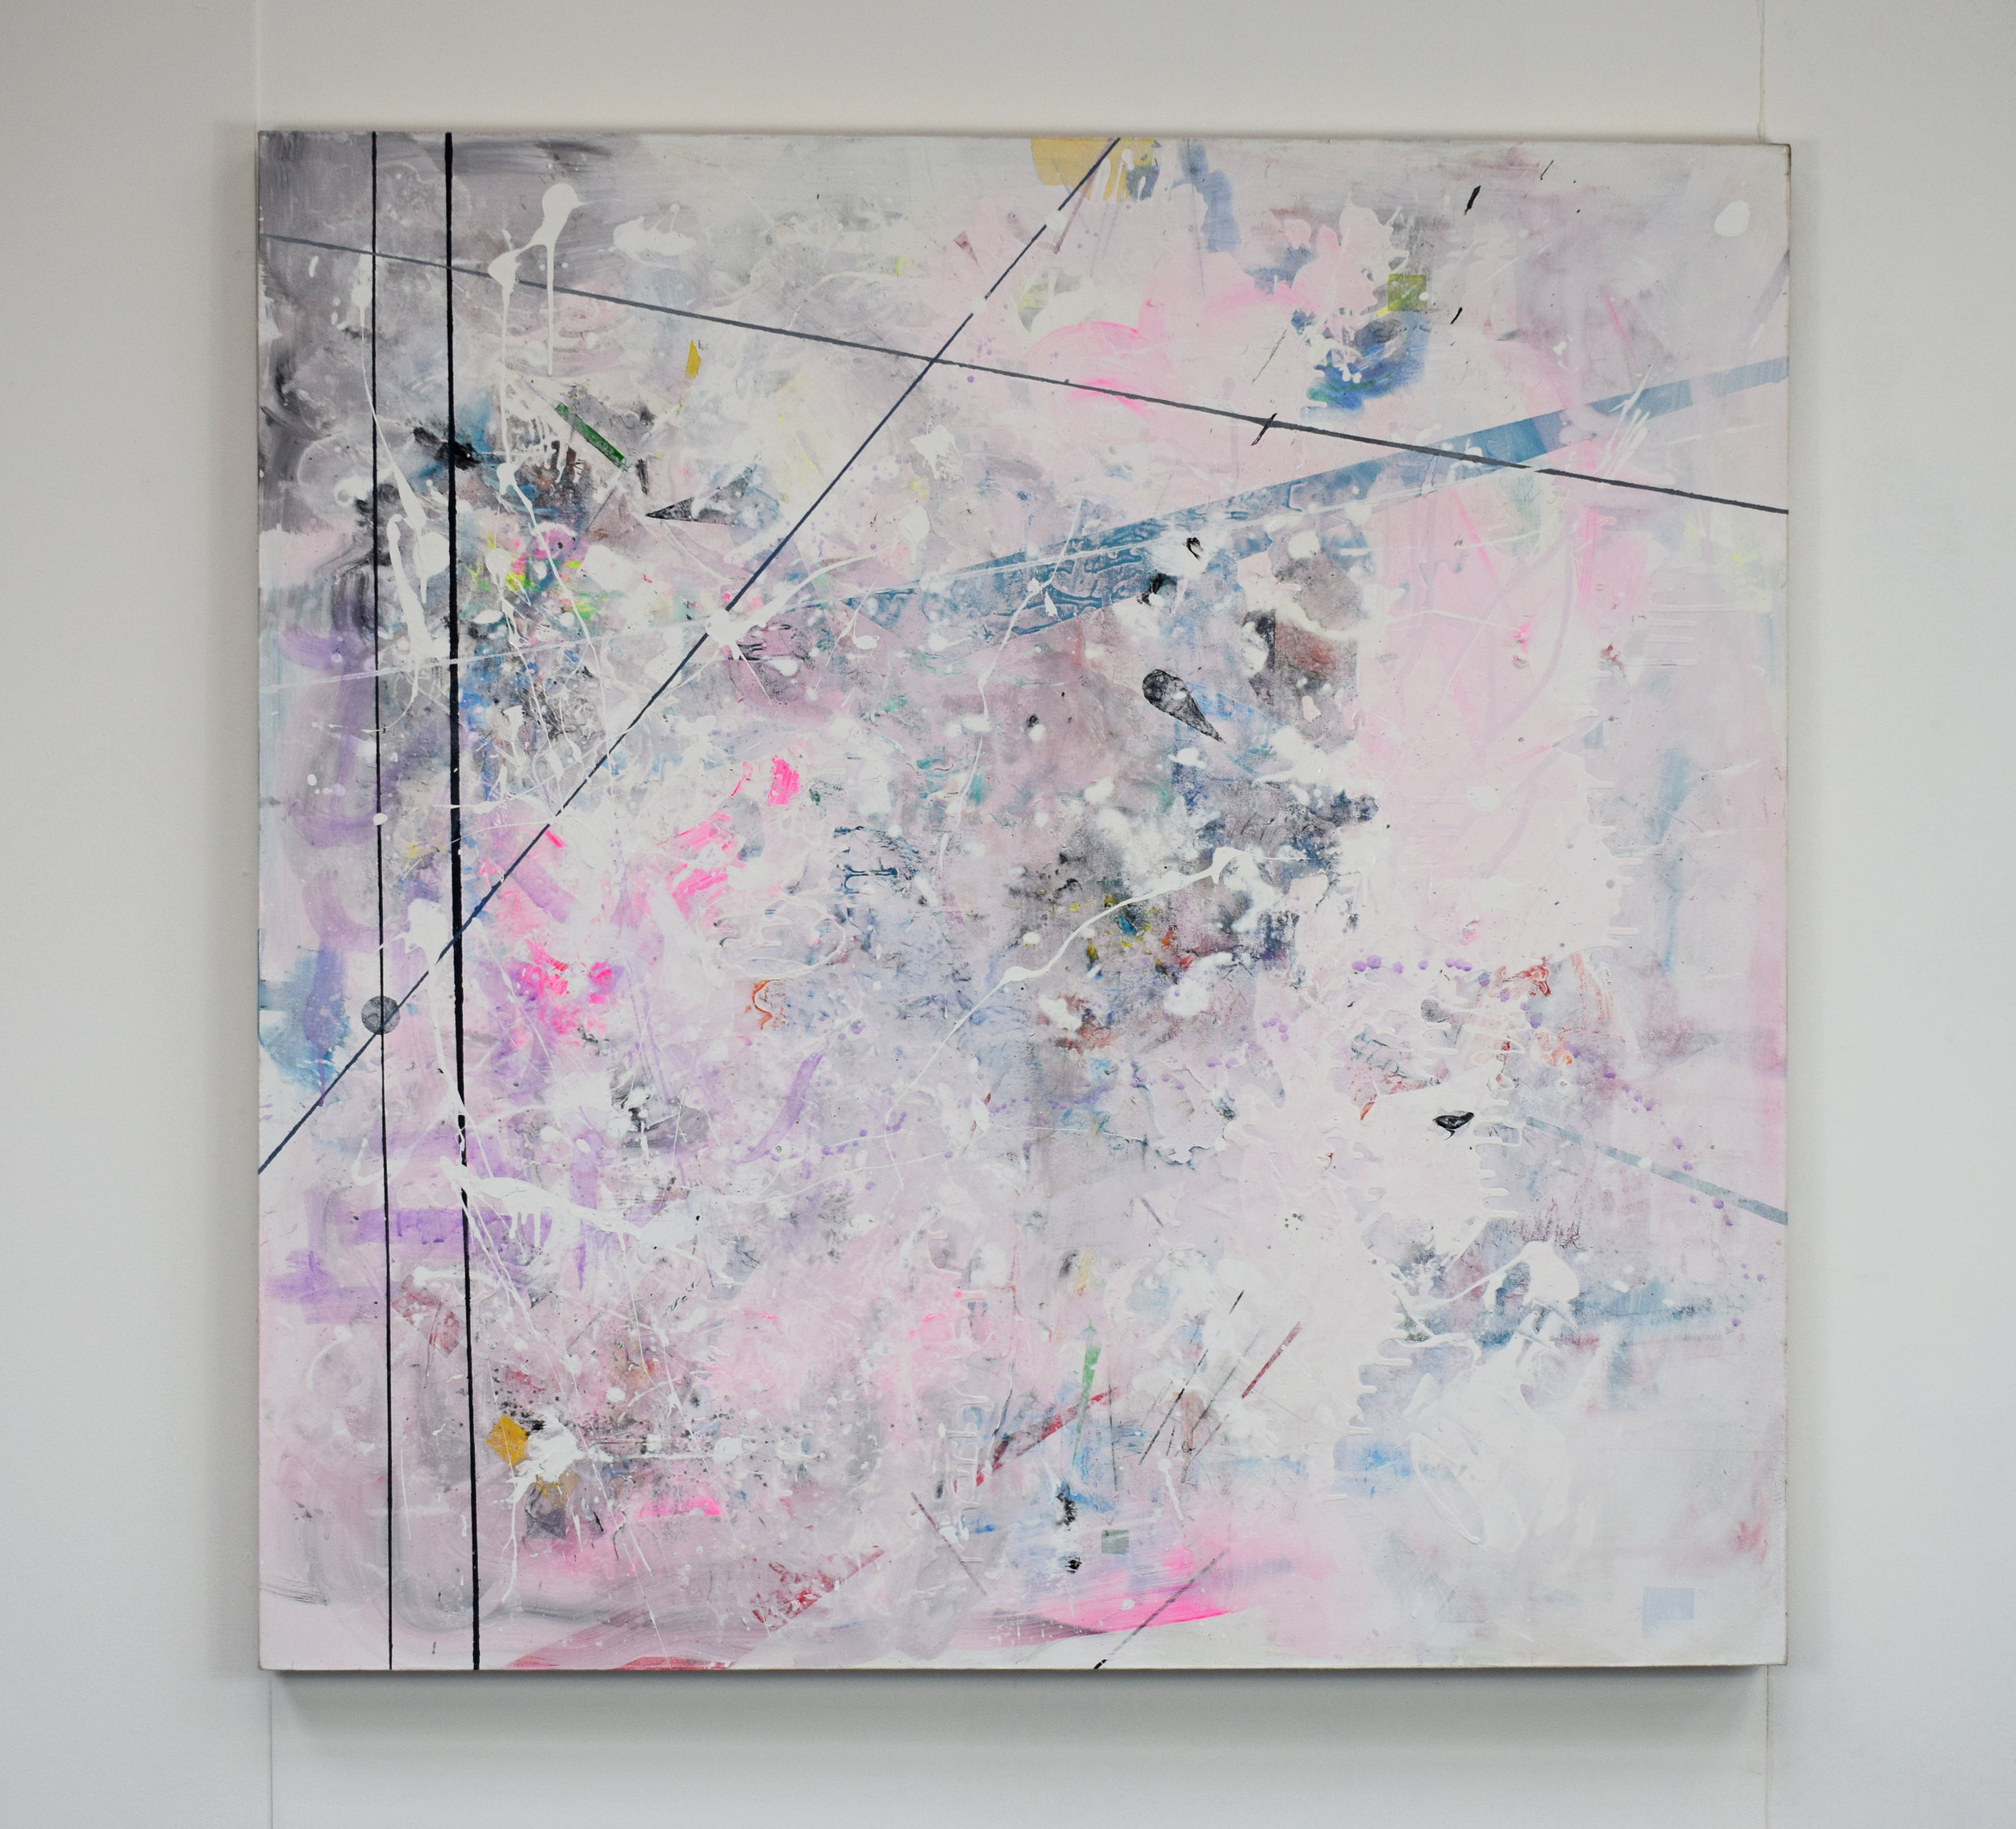 Layered Spaces #1 | 2018 Acrylic and oil on canvas 4ft x 4ft